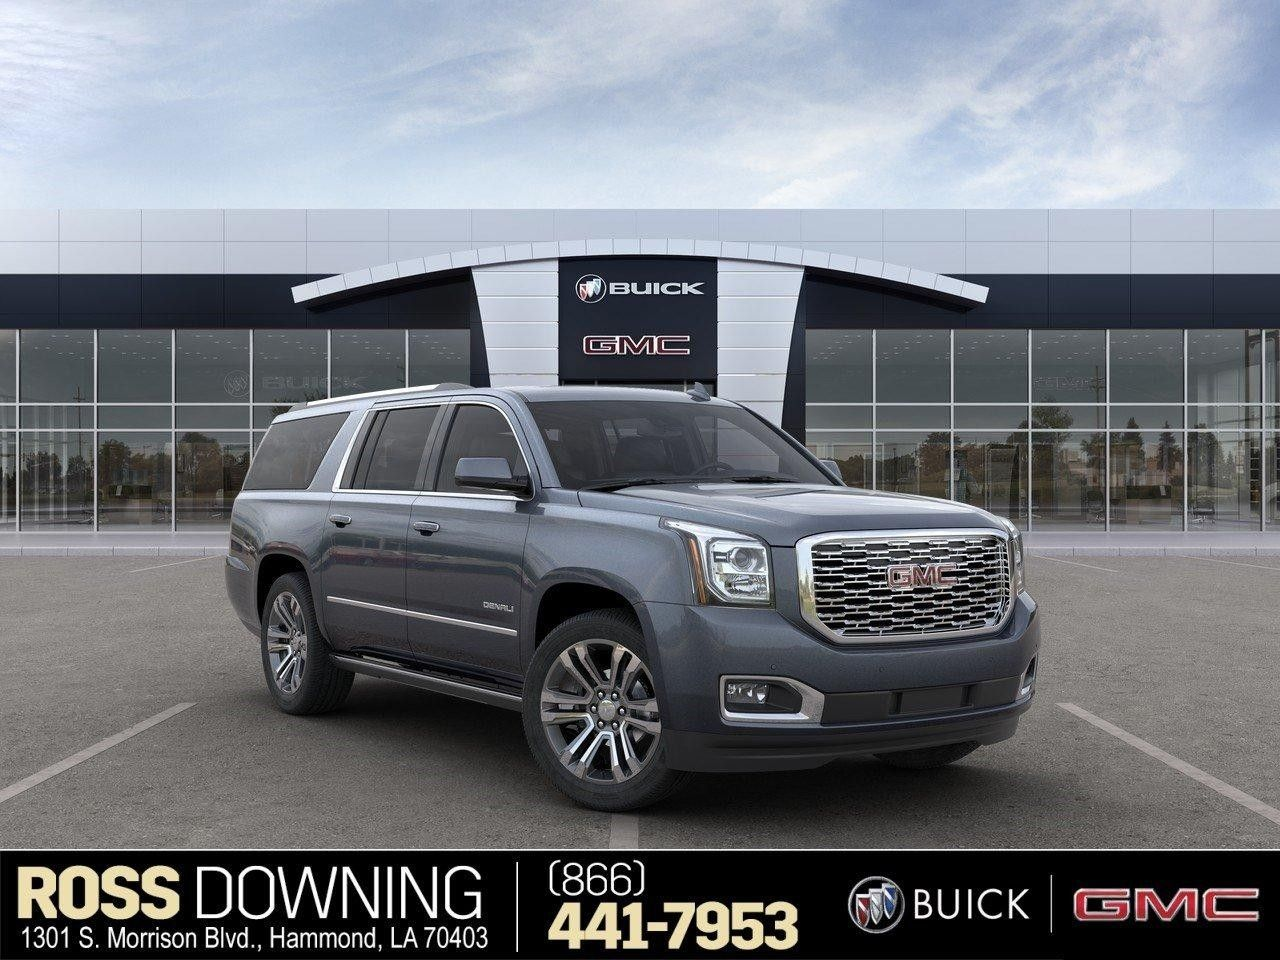 2020 Gmc Yukon Xl Denali Price Rumor di 2020